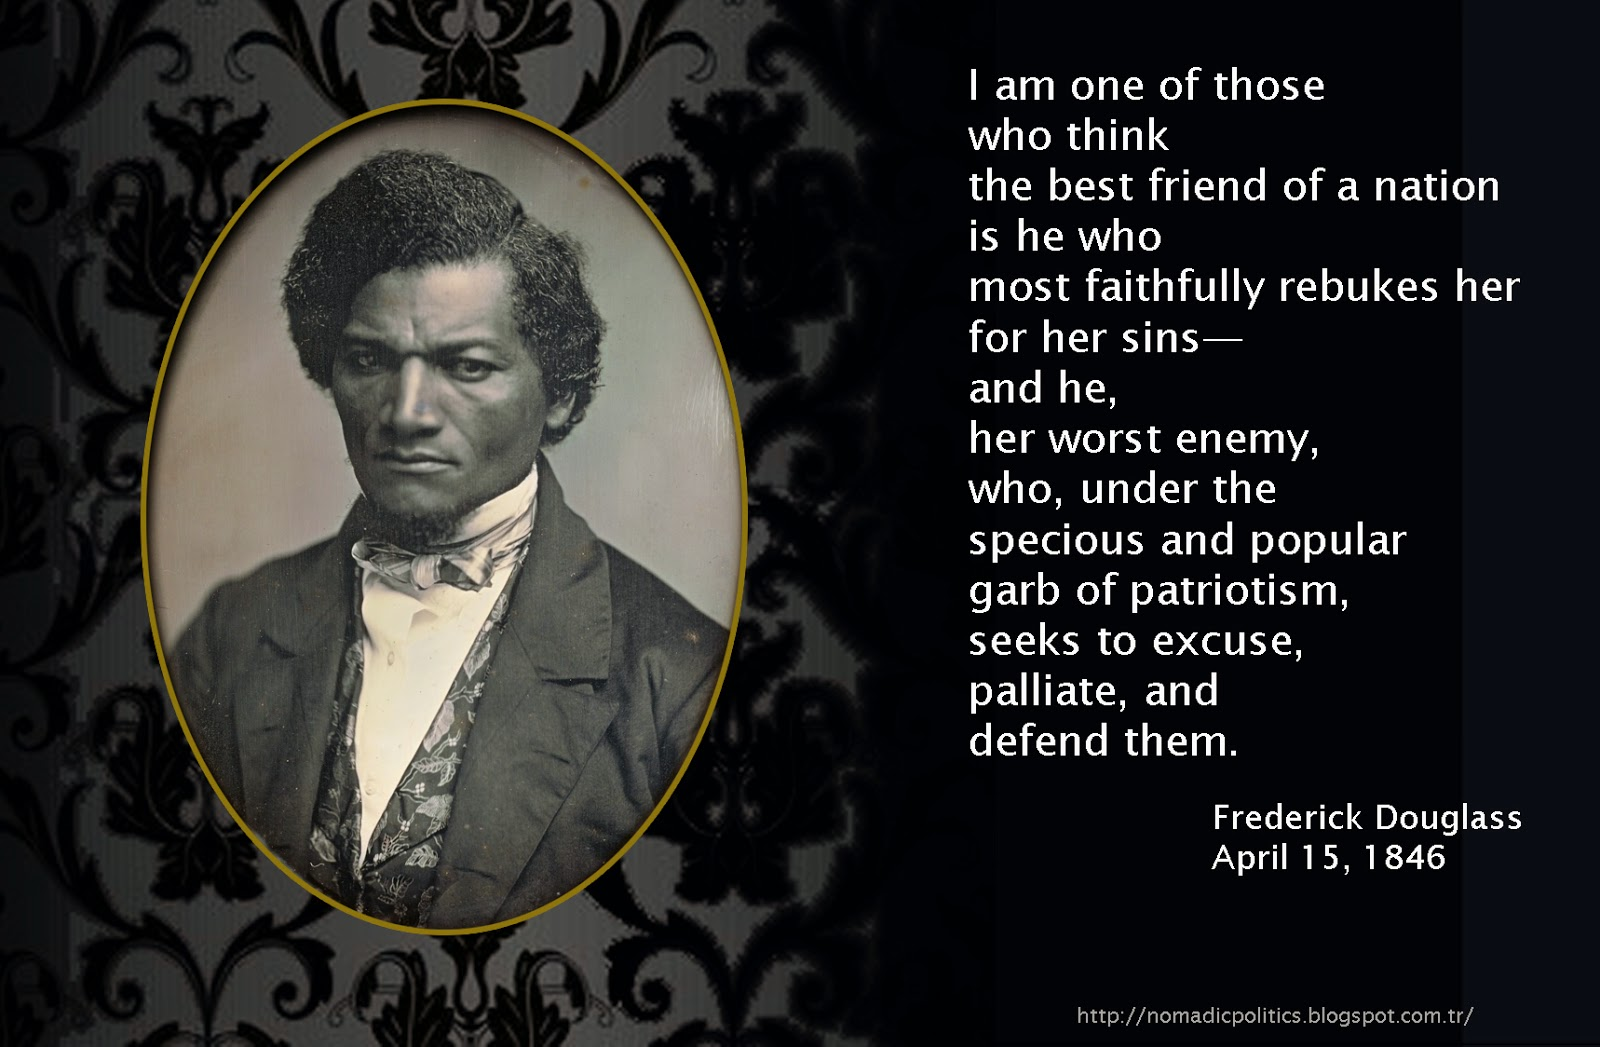 frederick douglass writing